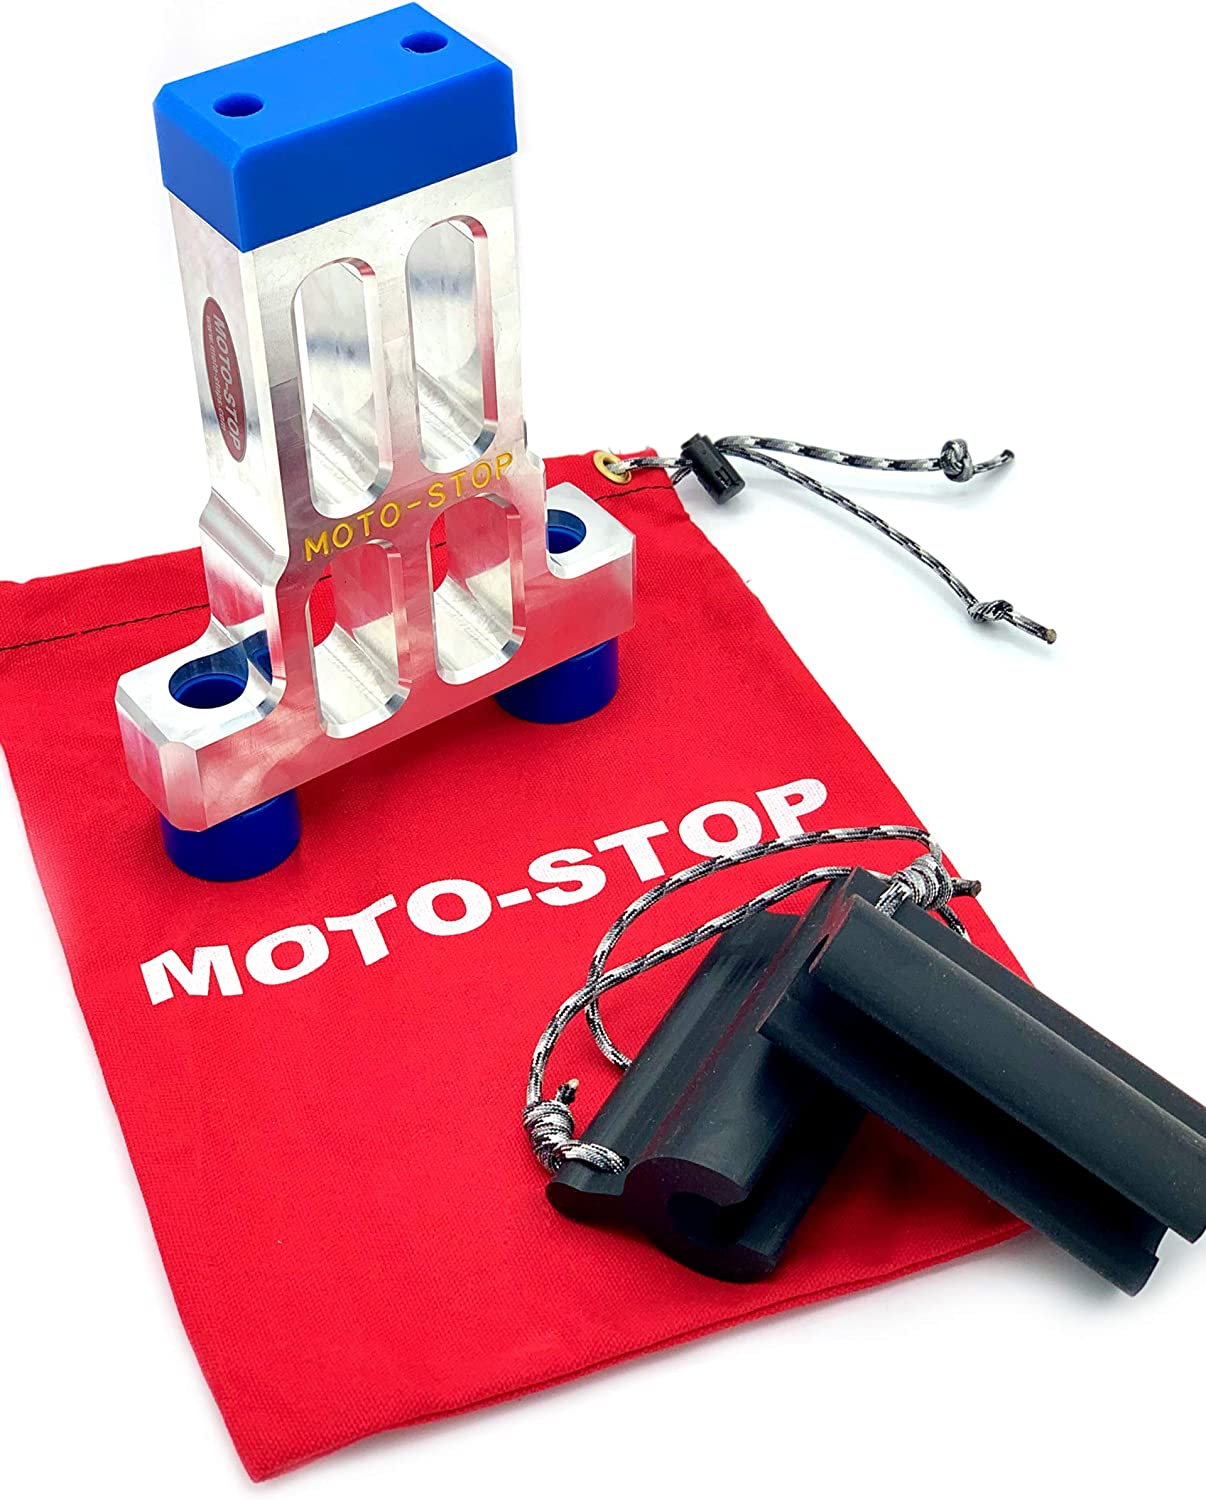 MOTO-STOP 1 Piece Skeleton TRANSOM Saver for Yamaha 4 Stroke Durable /& Made to Last